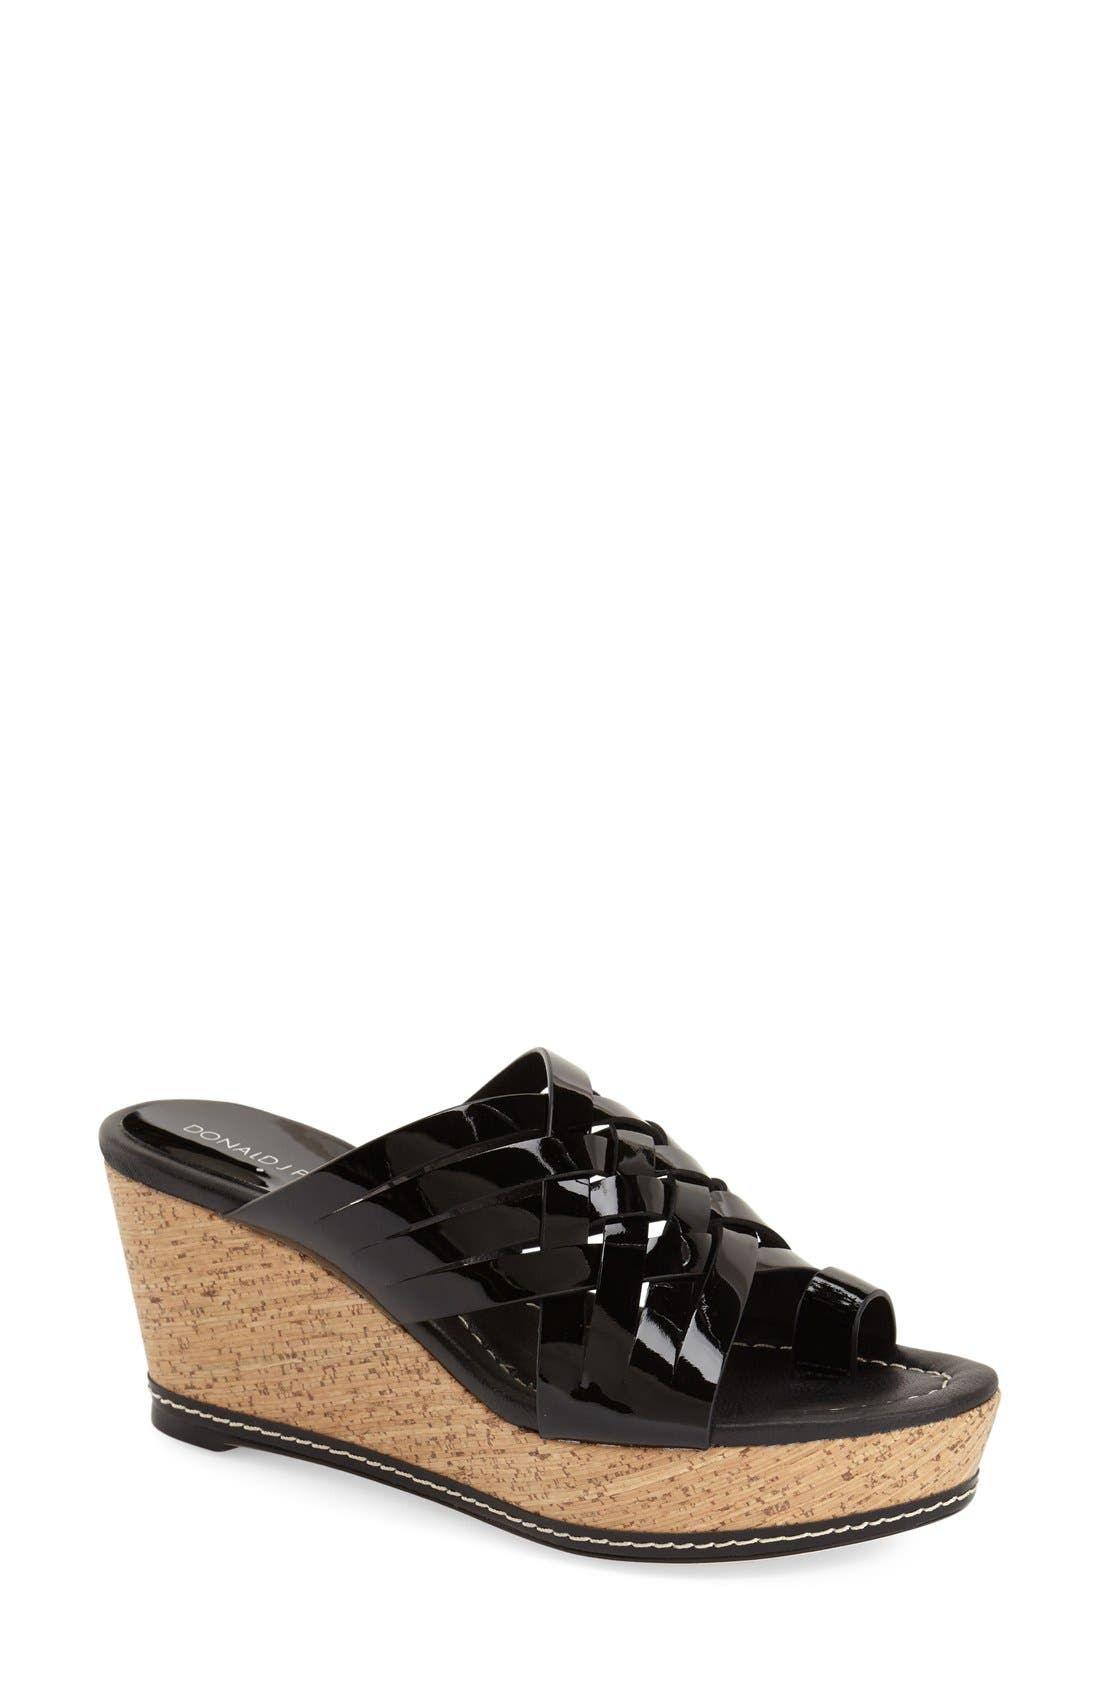 DONALD PLINER Donald J Pliner 'Flore' Wedge Sandal, Main, color, 001